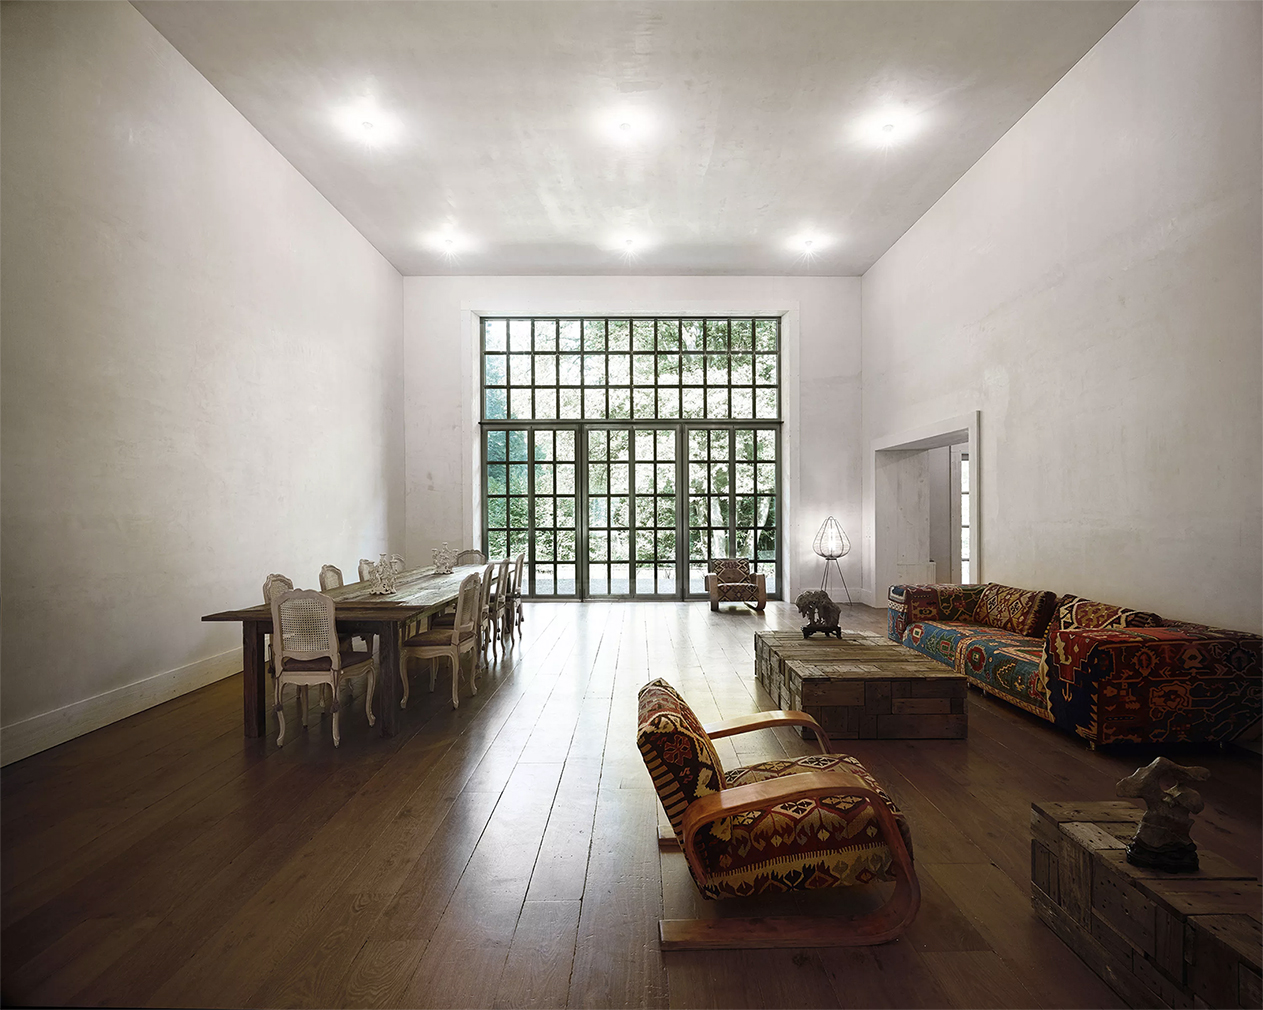 Ugo Rondinone's House No. 1 is on the market for $5.35M